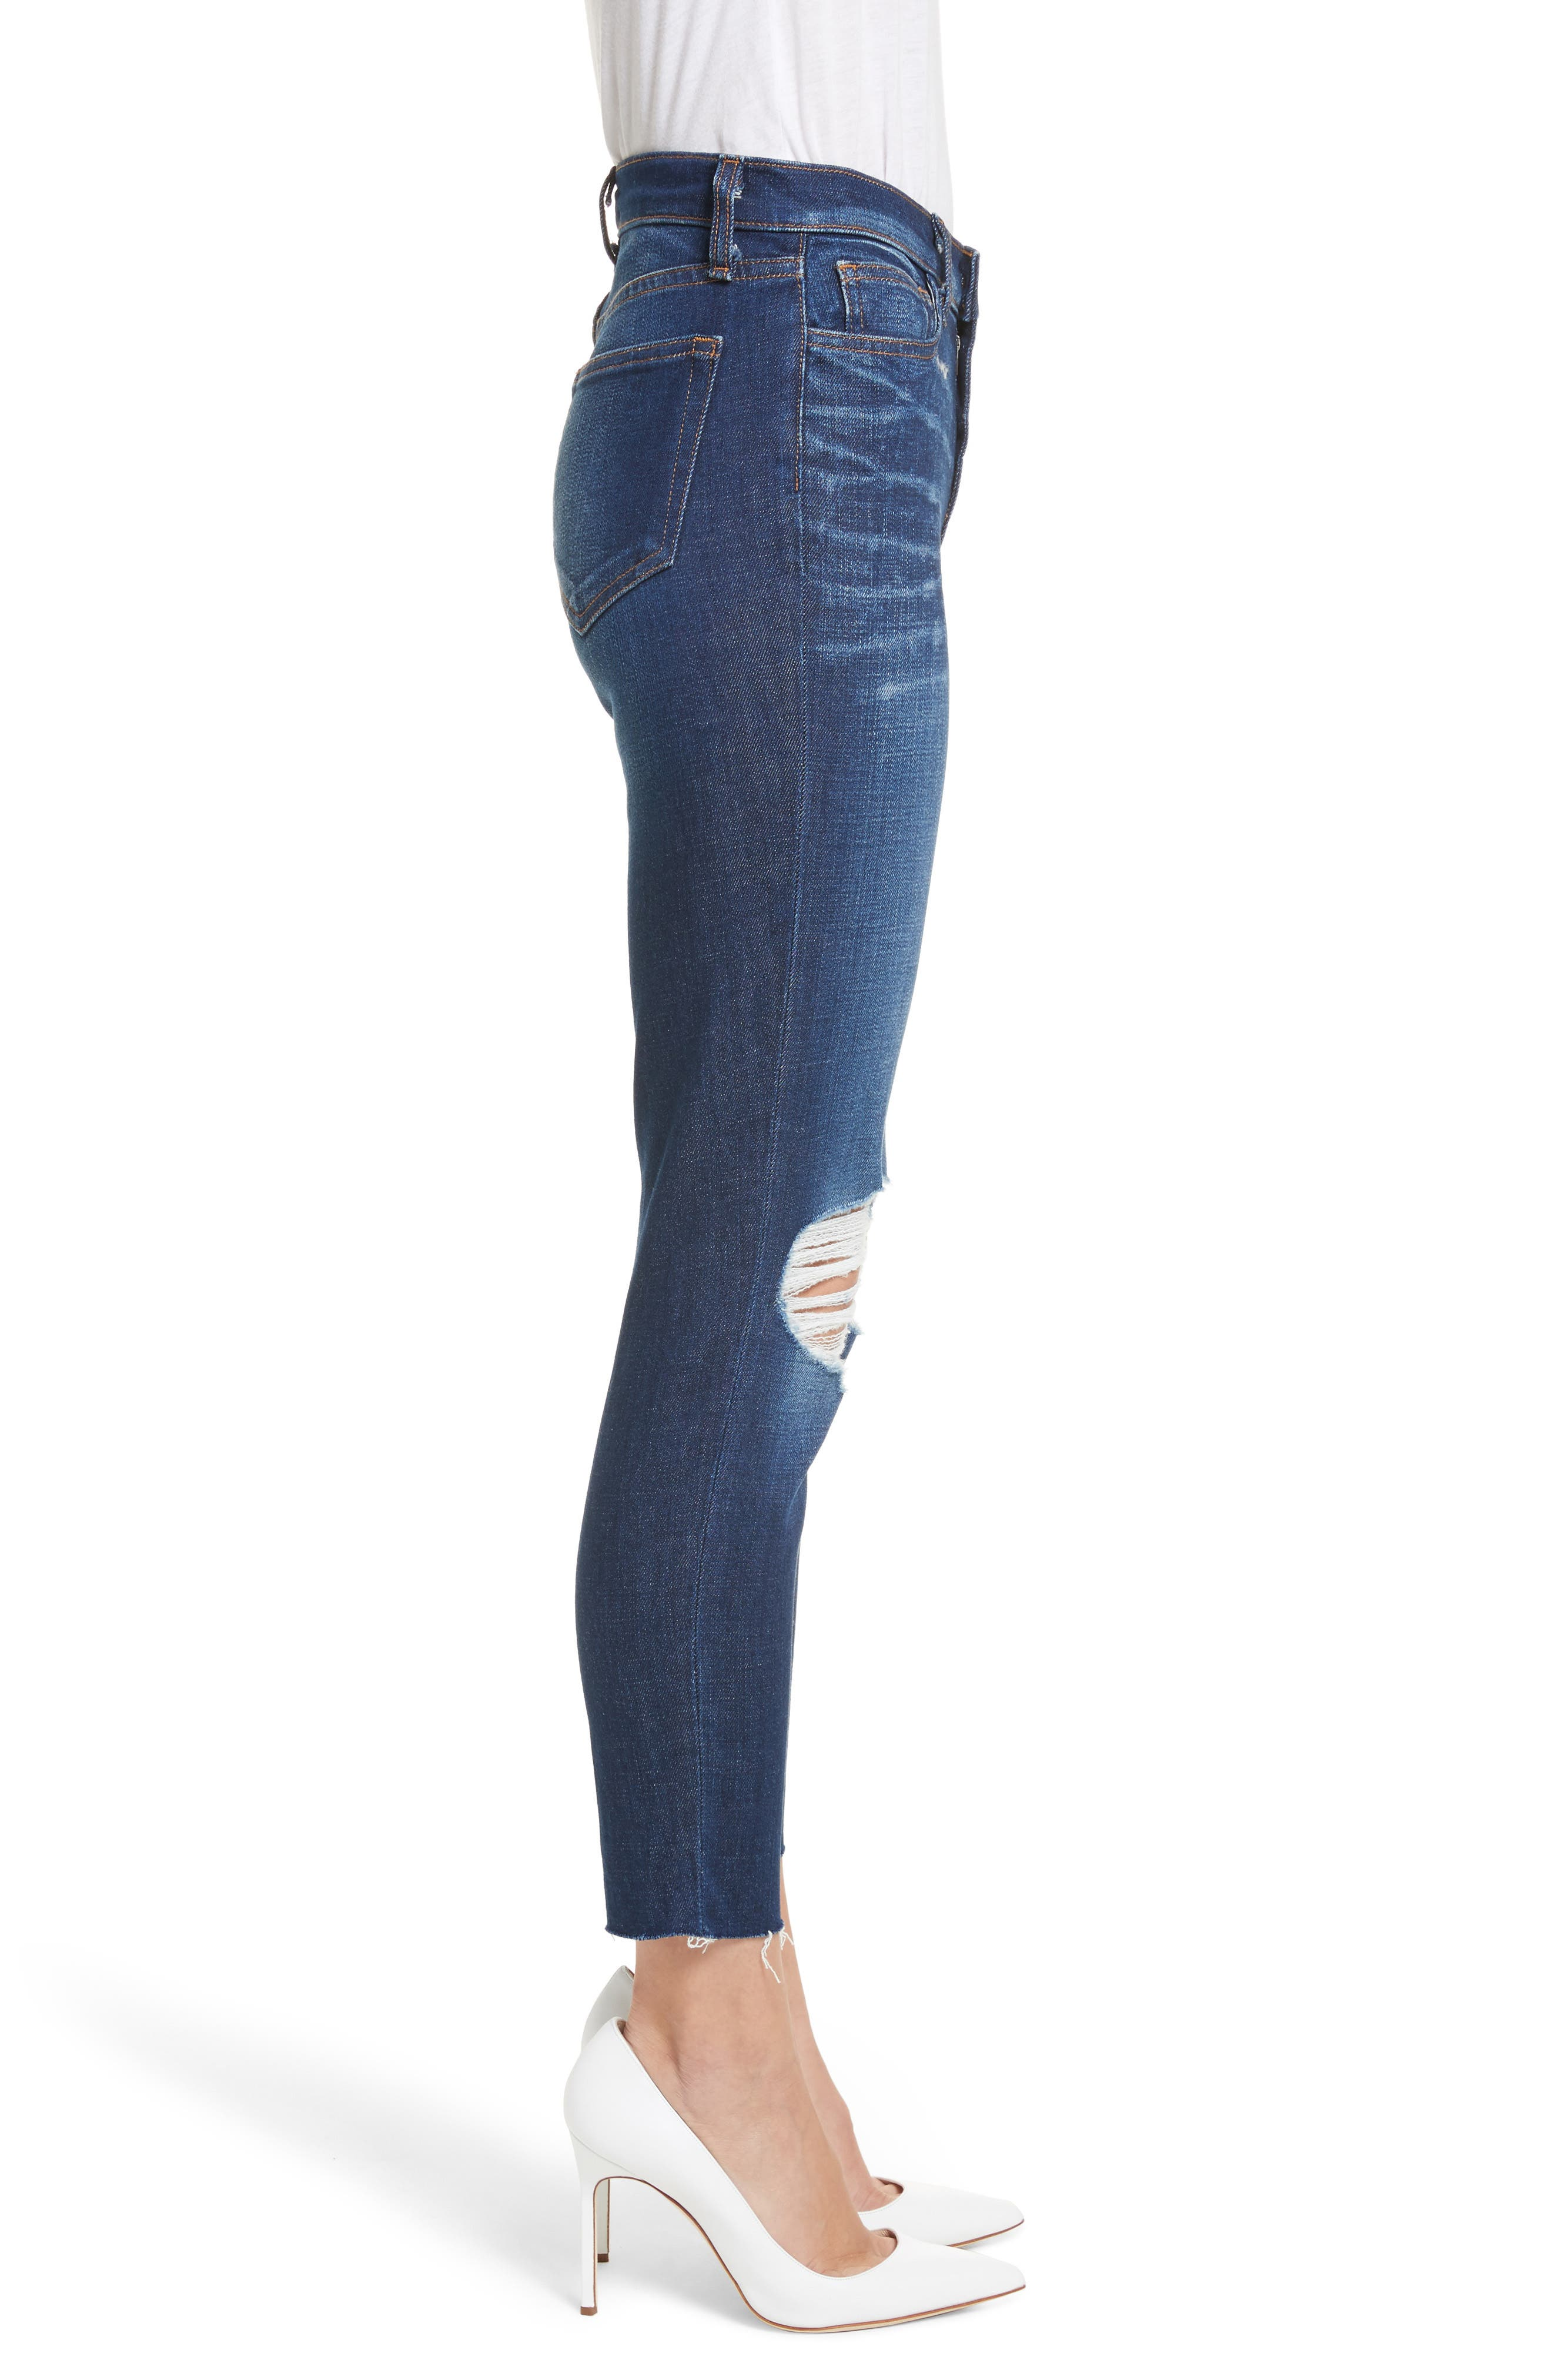 Abigail French Slim Ripped Skinny Jeans,                             Alternate thumbnail 3, color,                             401